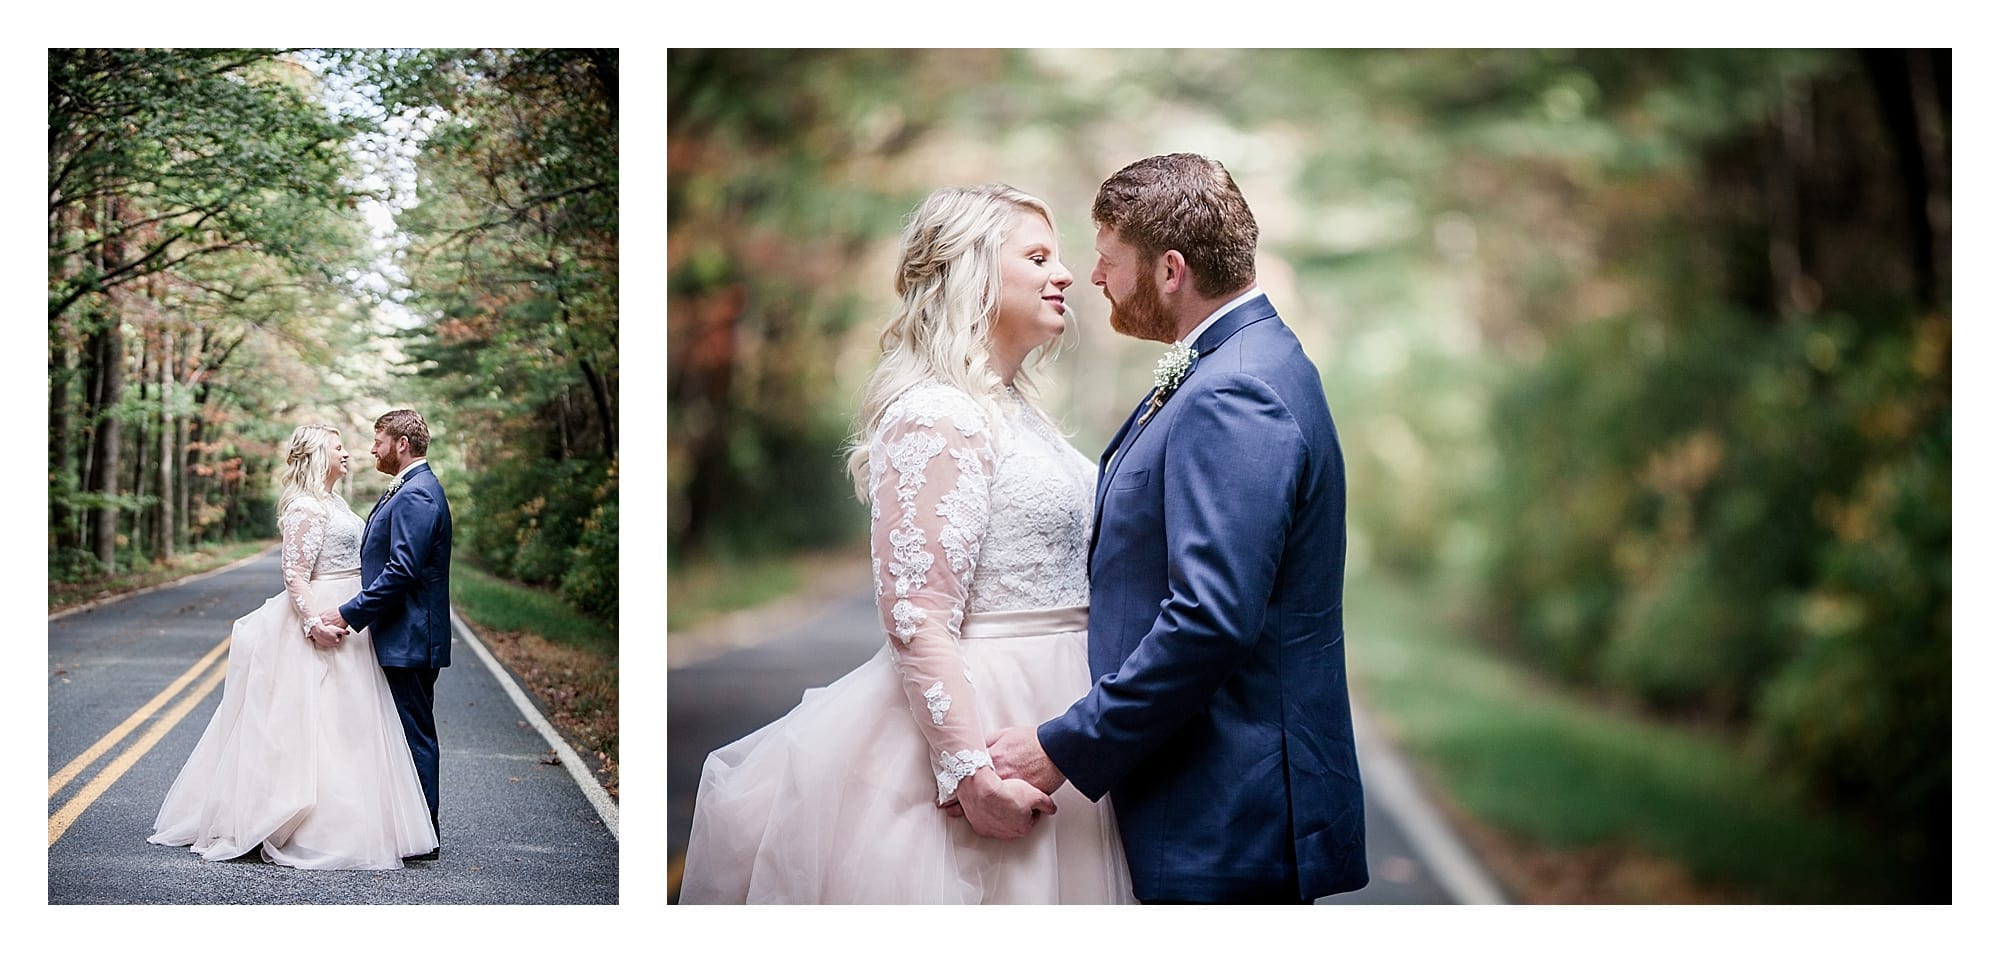 Gorgeous fall pictures bride and groom